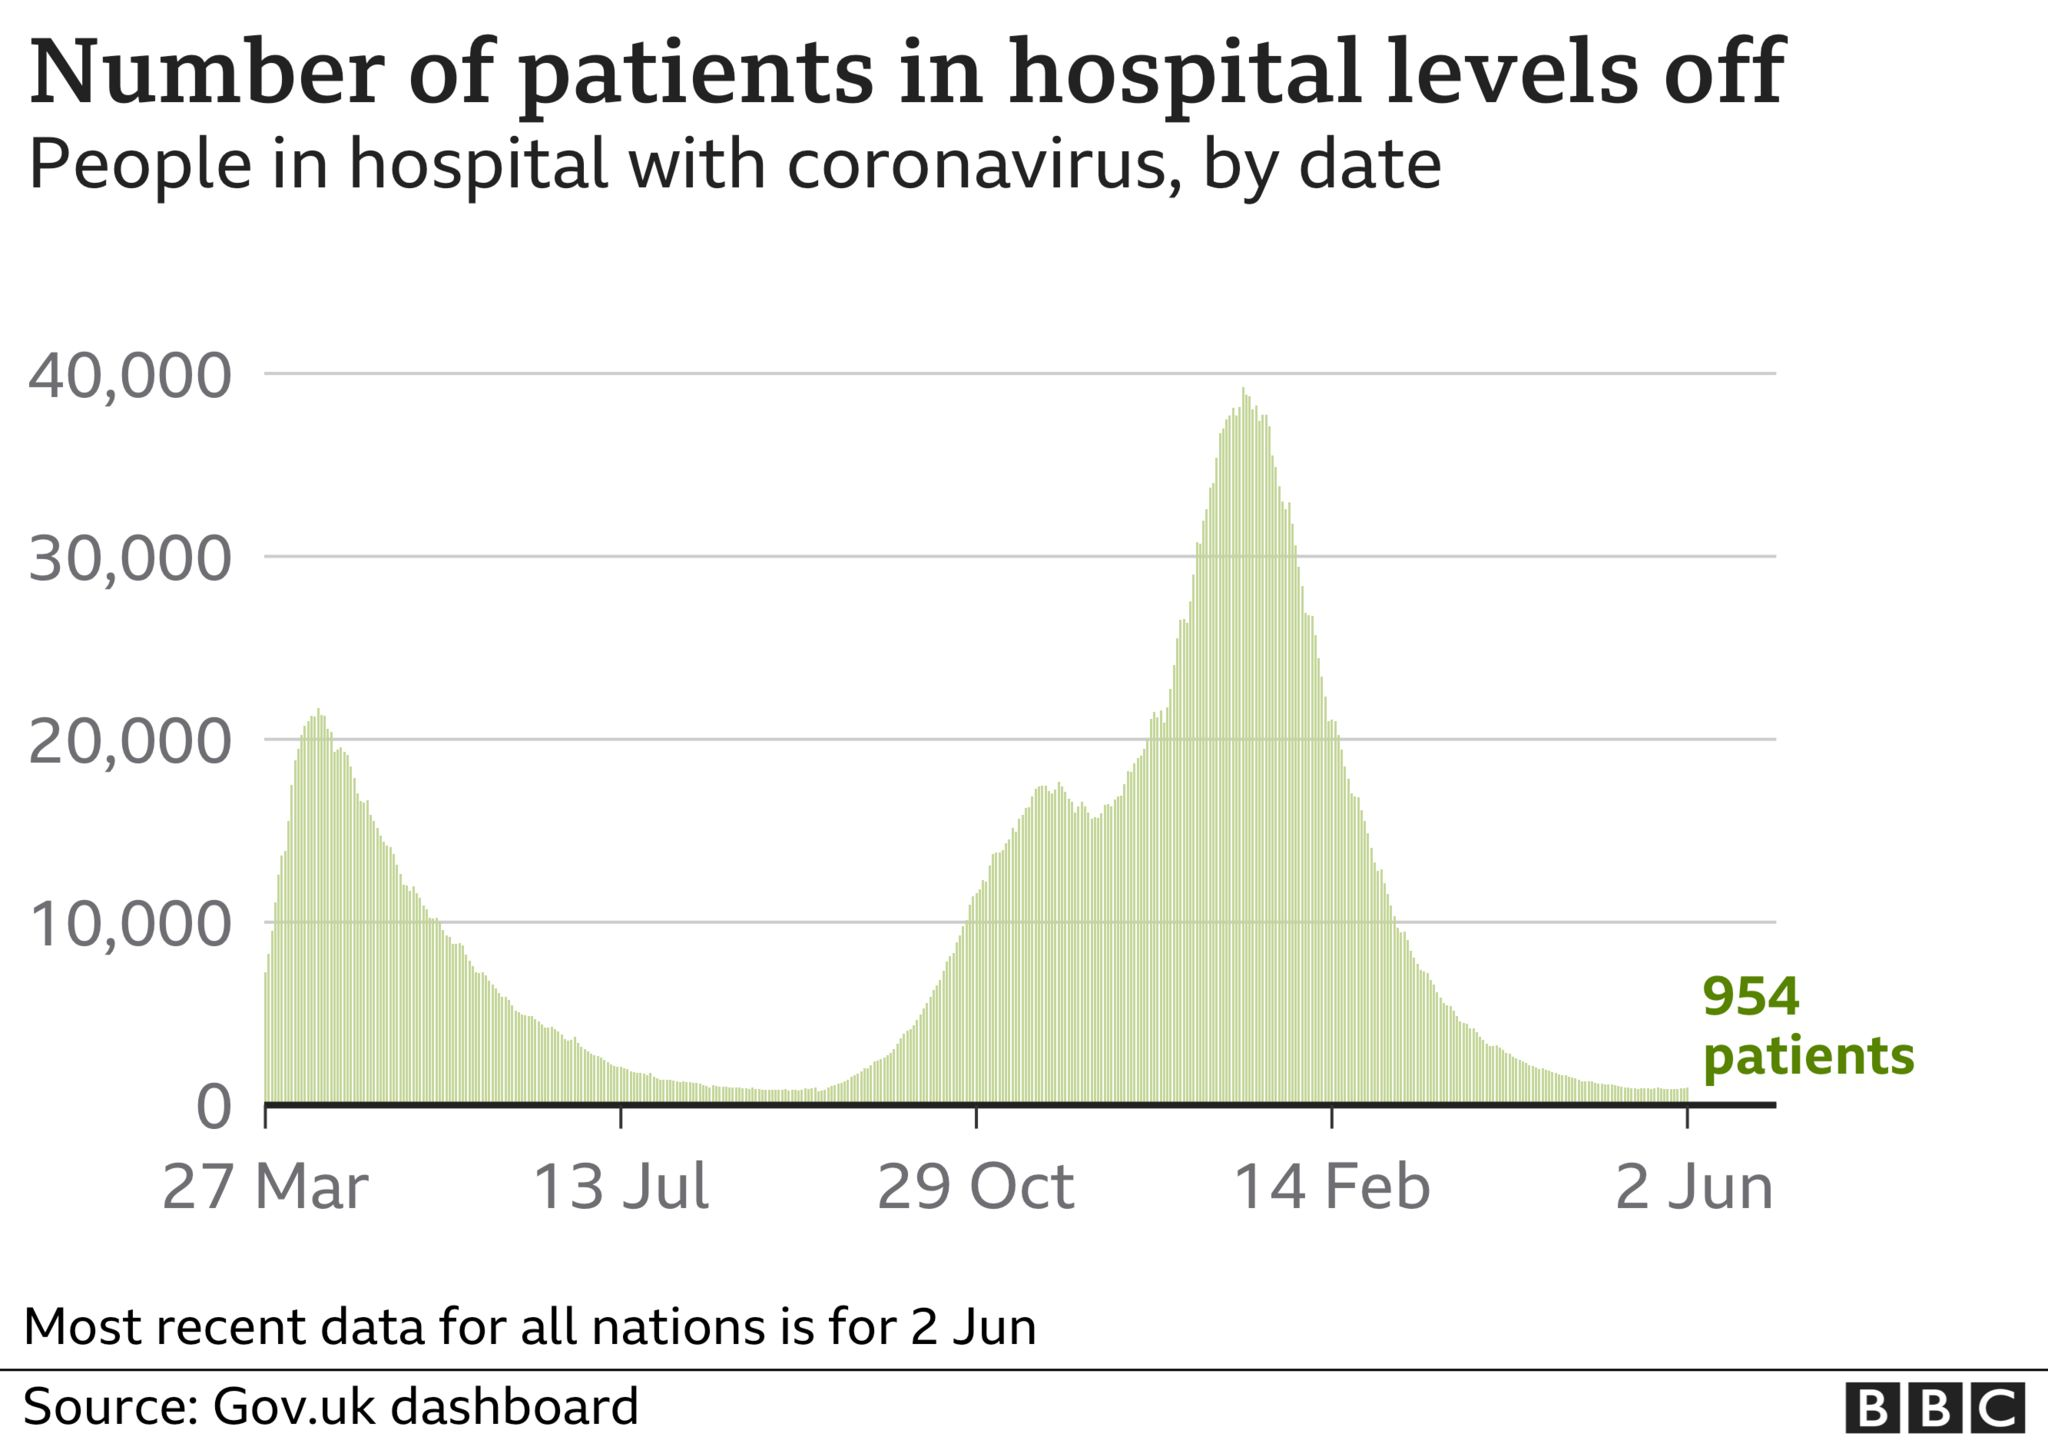 Chart showing the number of patients in hospital with Covid in the UK